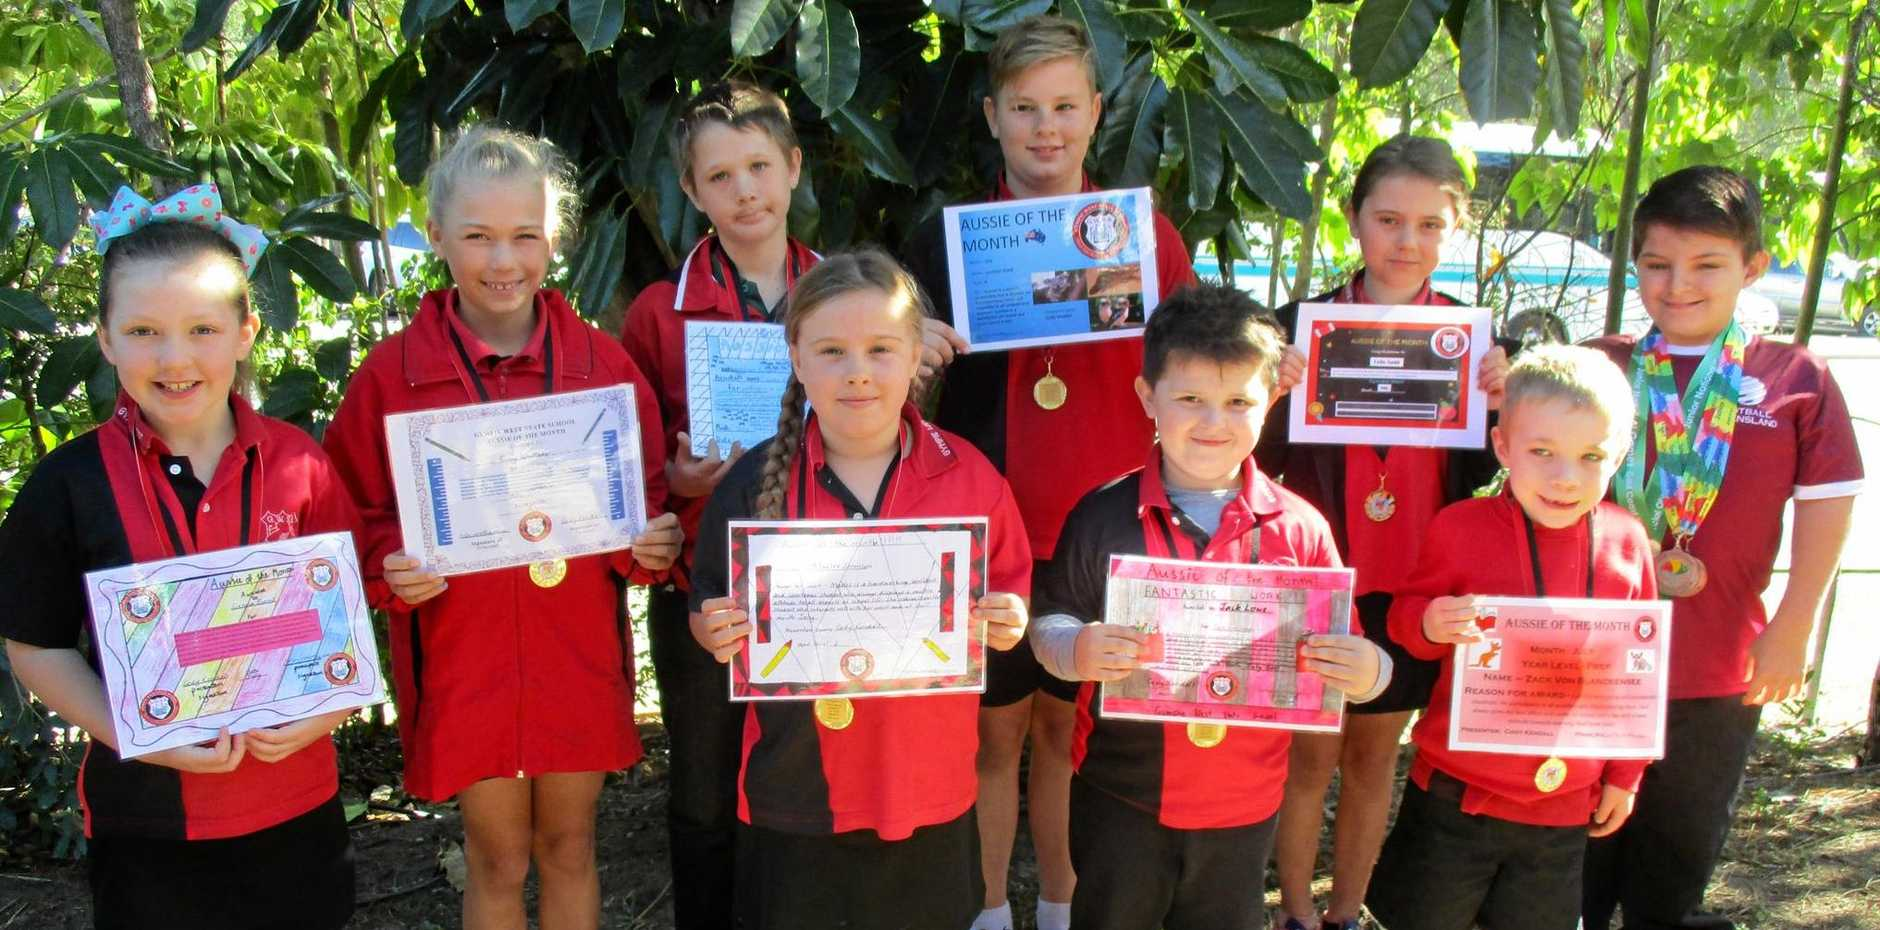 PROUD MOMENT: Guest presenter Cody Kendall (back right) returned to his old primary school to present Gympie West's Aussies of the Month with their medals and certificates. They are (back from left) Sienna Burns, Romy Whittaker, Aaron Knight, Lochlan Hand, Leila Gadd, (front) Maelee Sorensen, Jack Lowe and Zack Von Blanckensee.